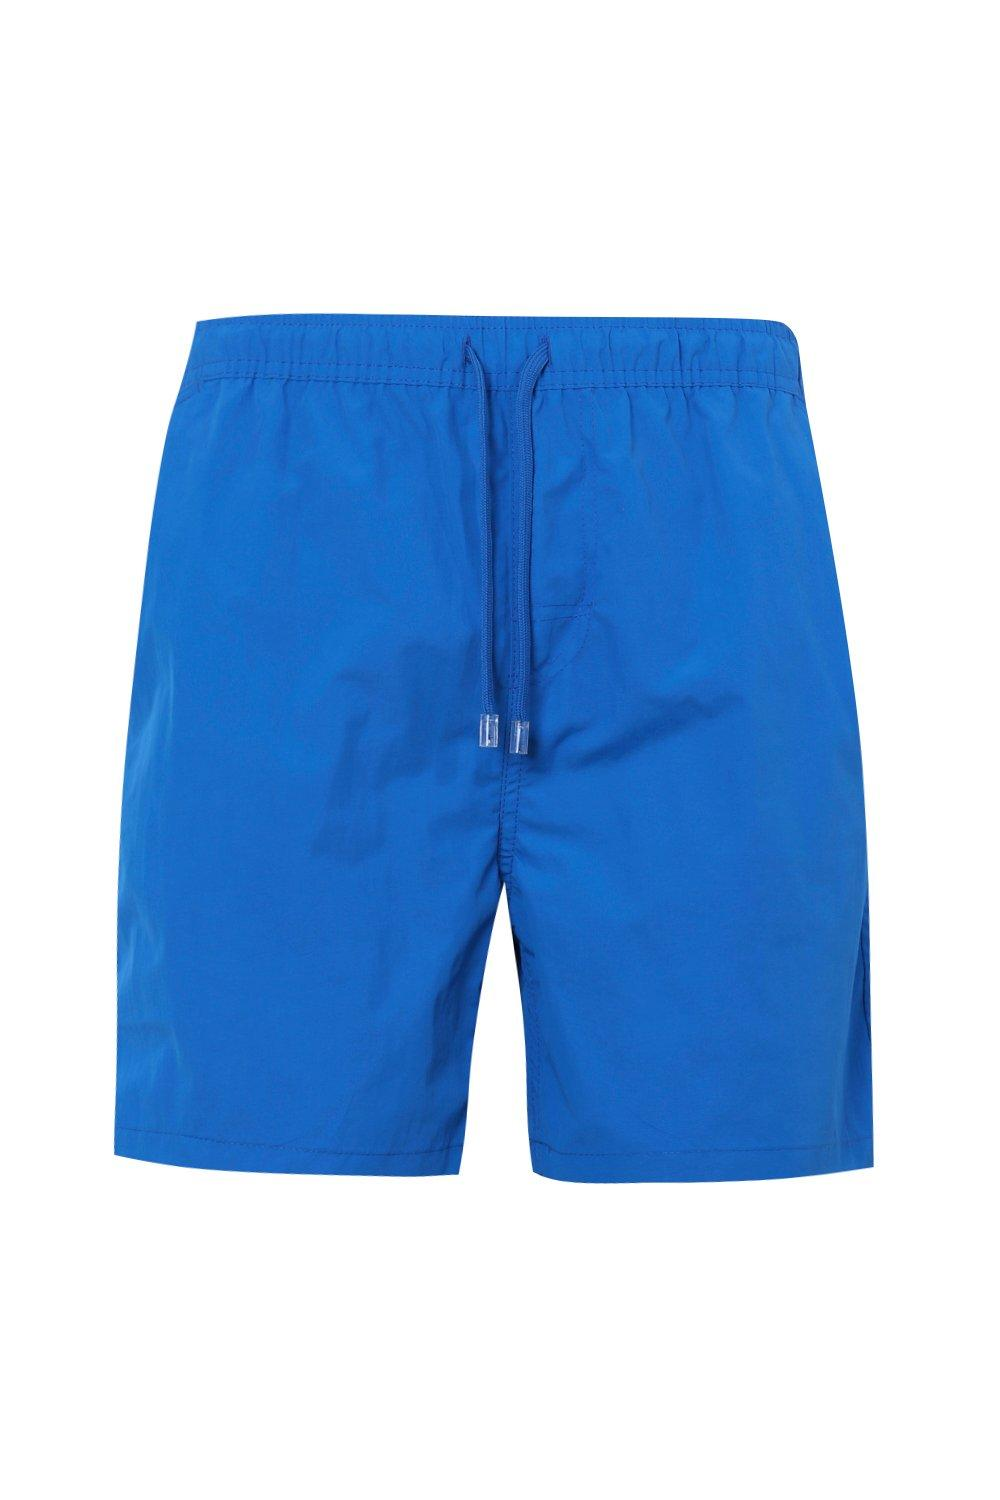 boohooMAN turquoise Mid Length Swim Short With Contrast Pocket